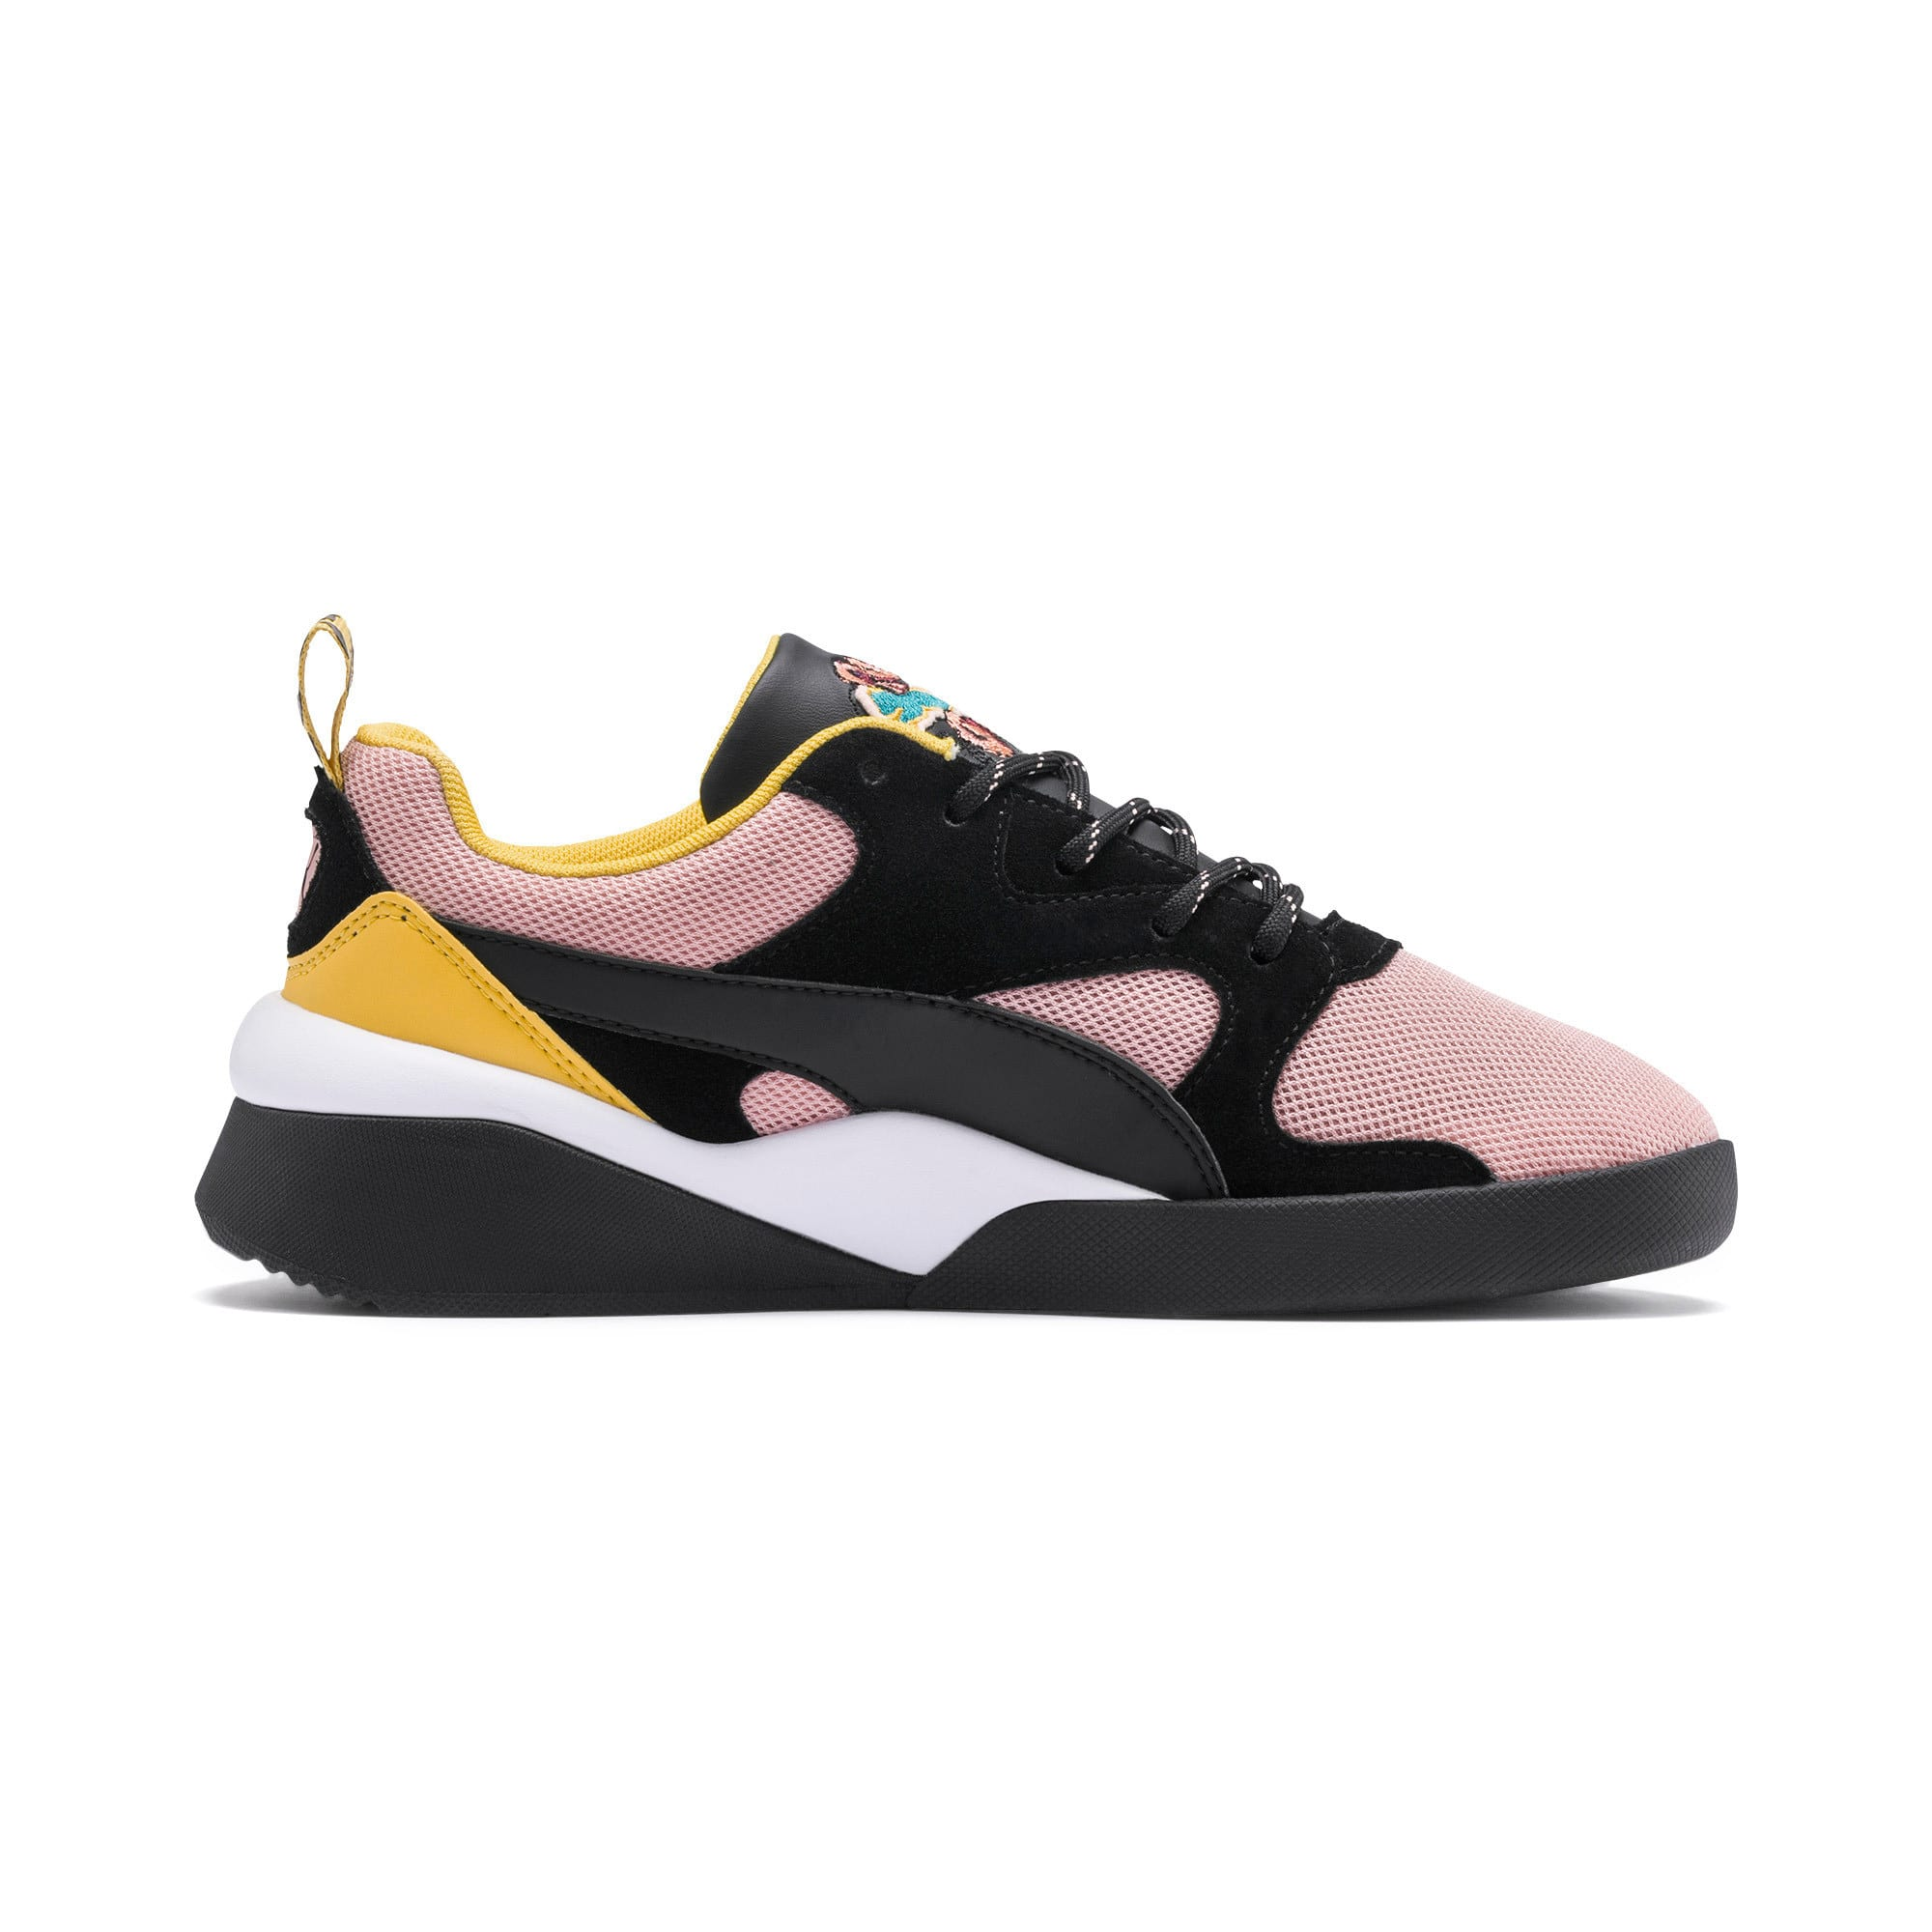 Thumbnail 5 of PUMA x SUE TSAI Aeon Women's Sneakers, Bridal Rose-Puma Black, medium